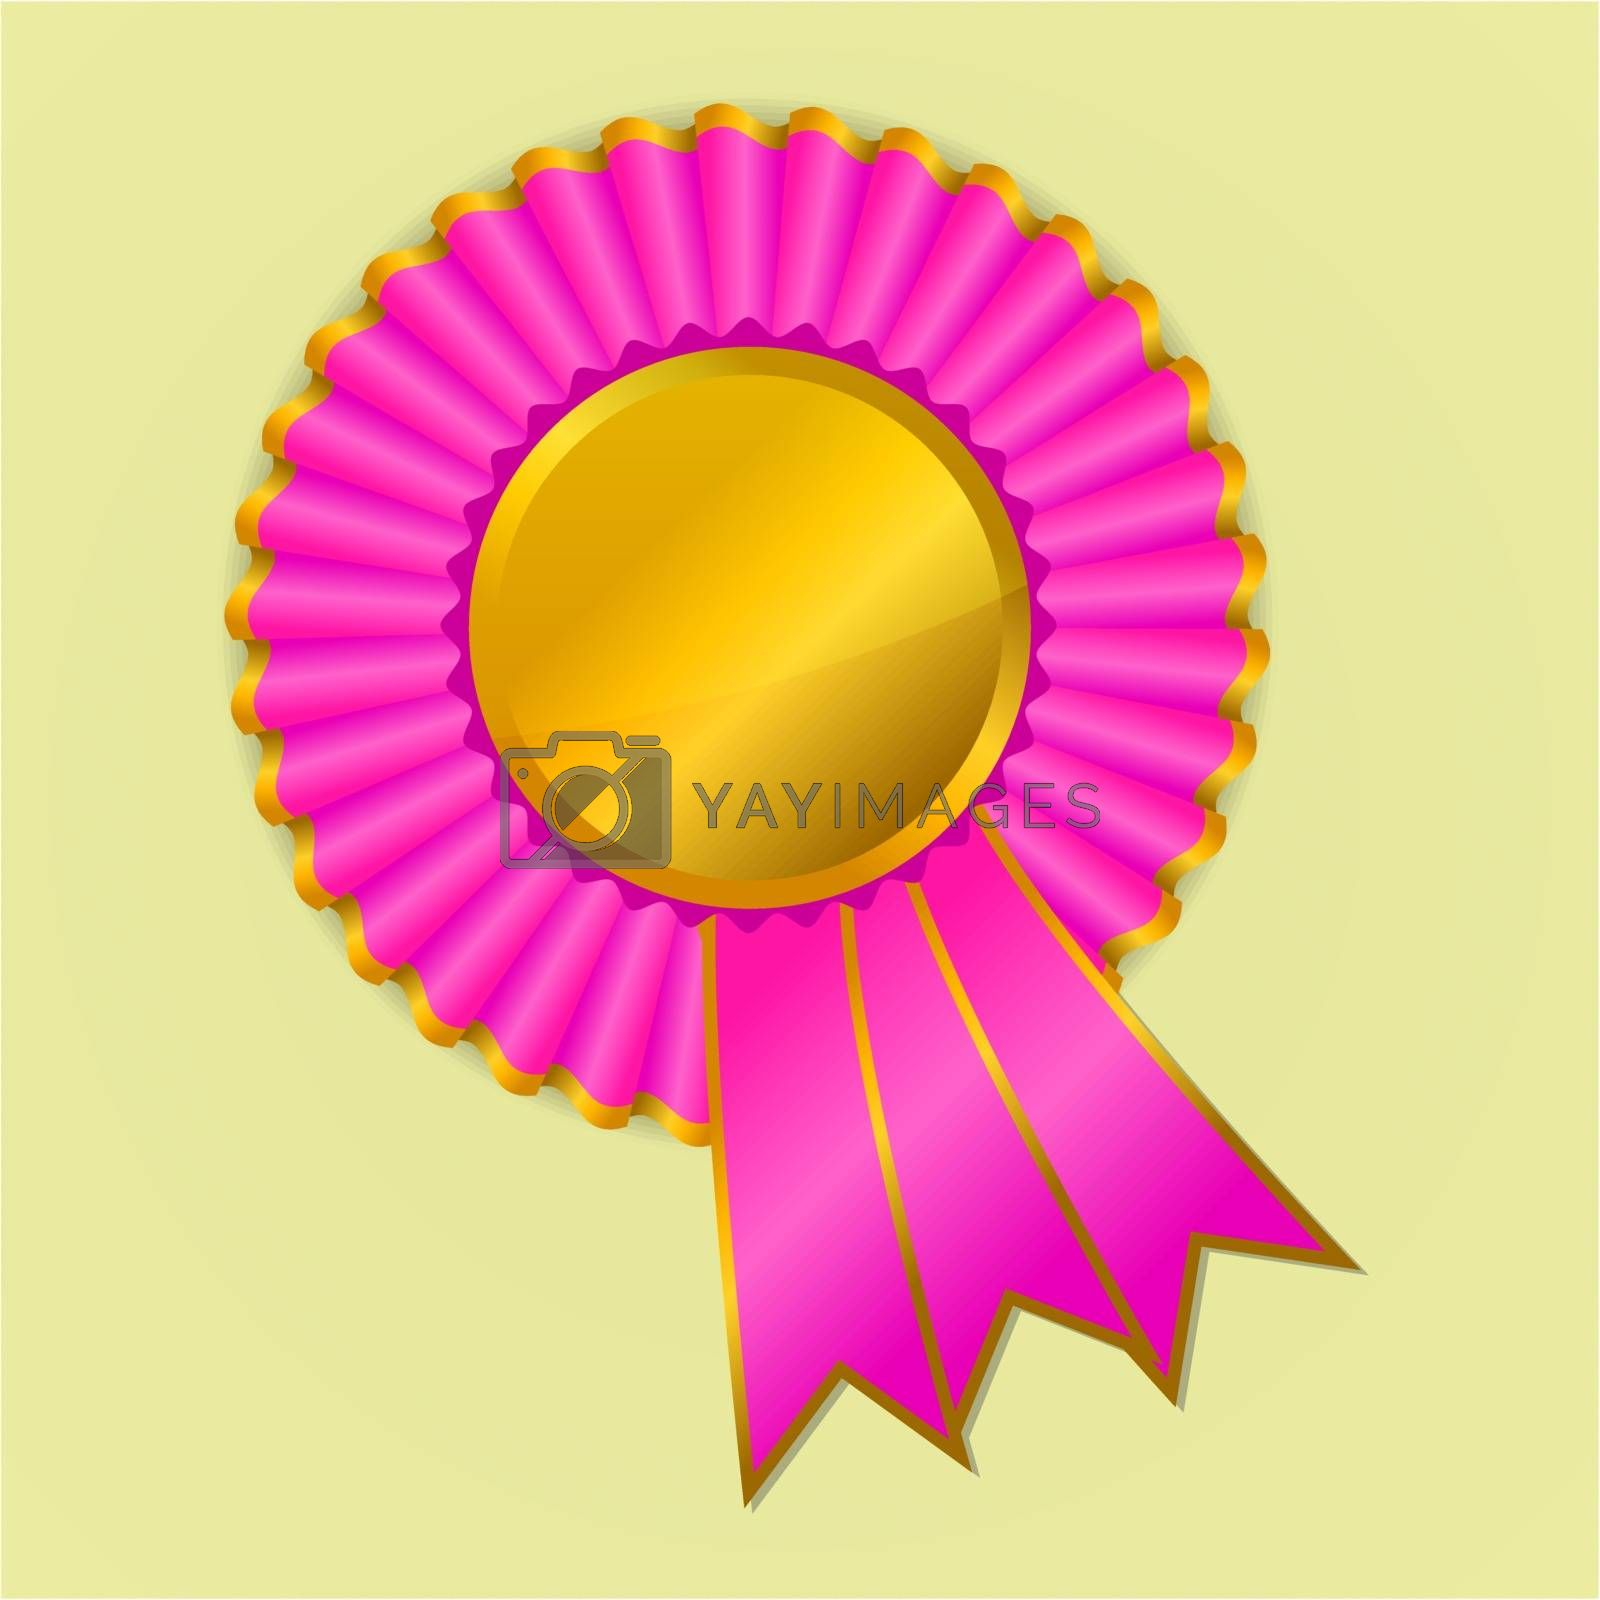 Pink and gold award ribbon rosette on yellow background, vector illustration